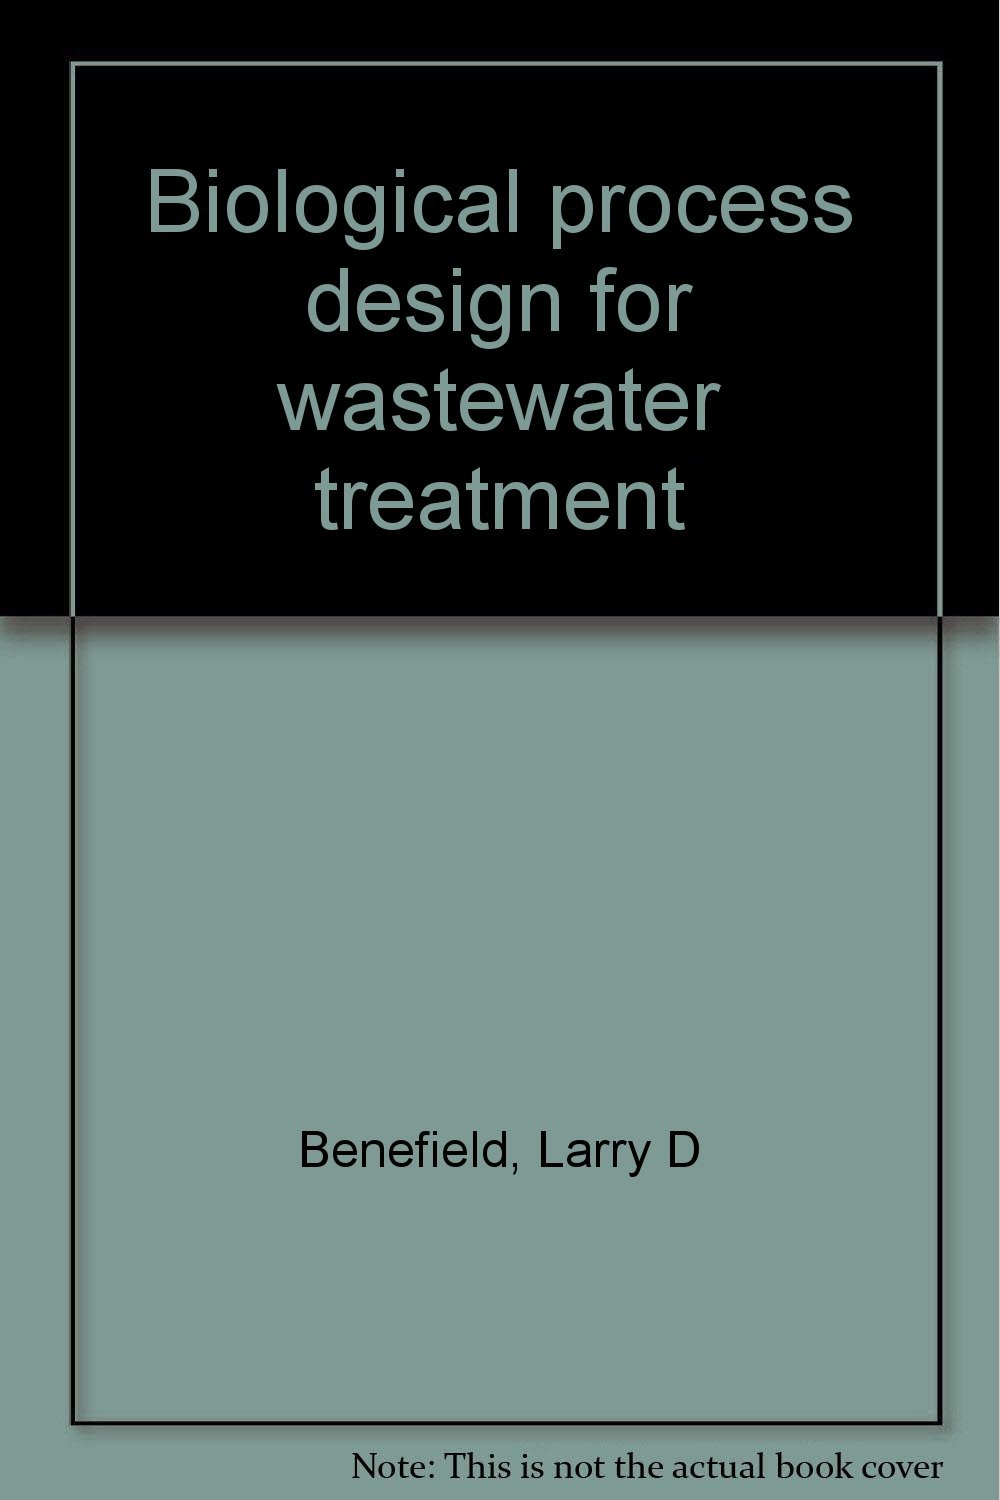 Biological process design for wastewater treatment: Larry D Benefield:  9780935005028: Amazon.com: Books